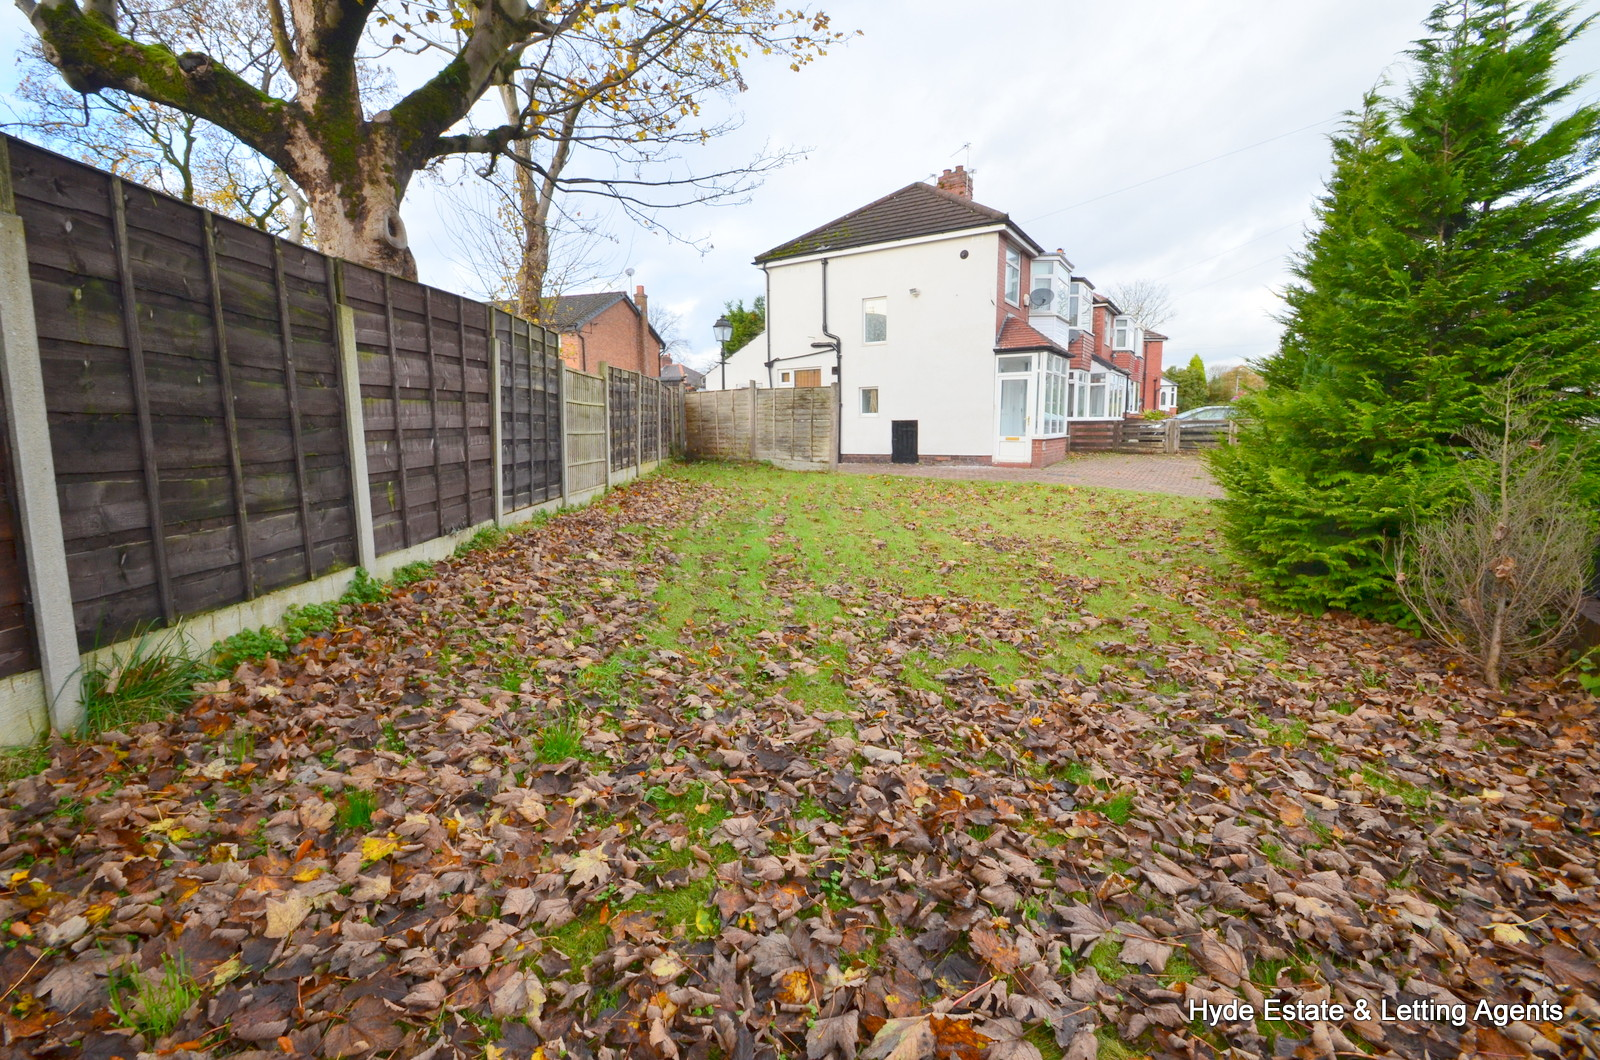 Images for Beech Avenue, Whitefield, Manchester, M45 7EW EAID: BID:hyde